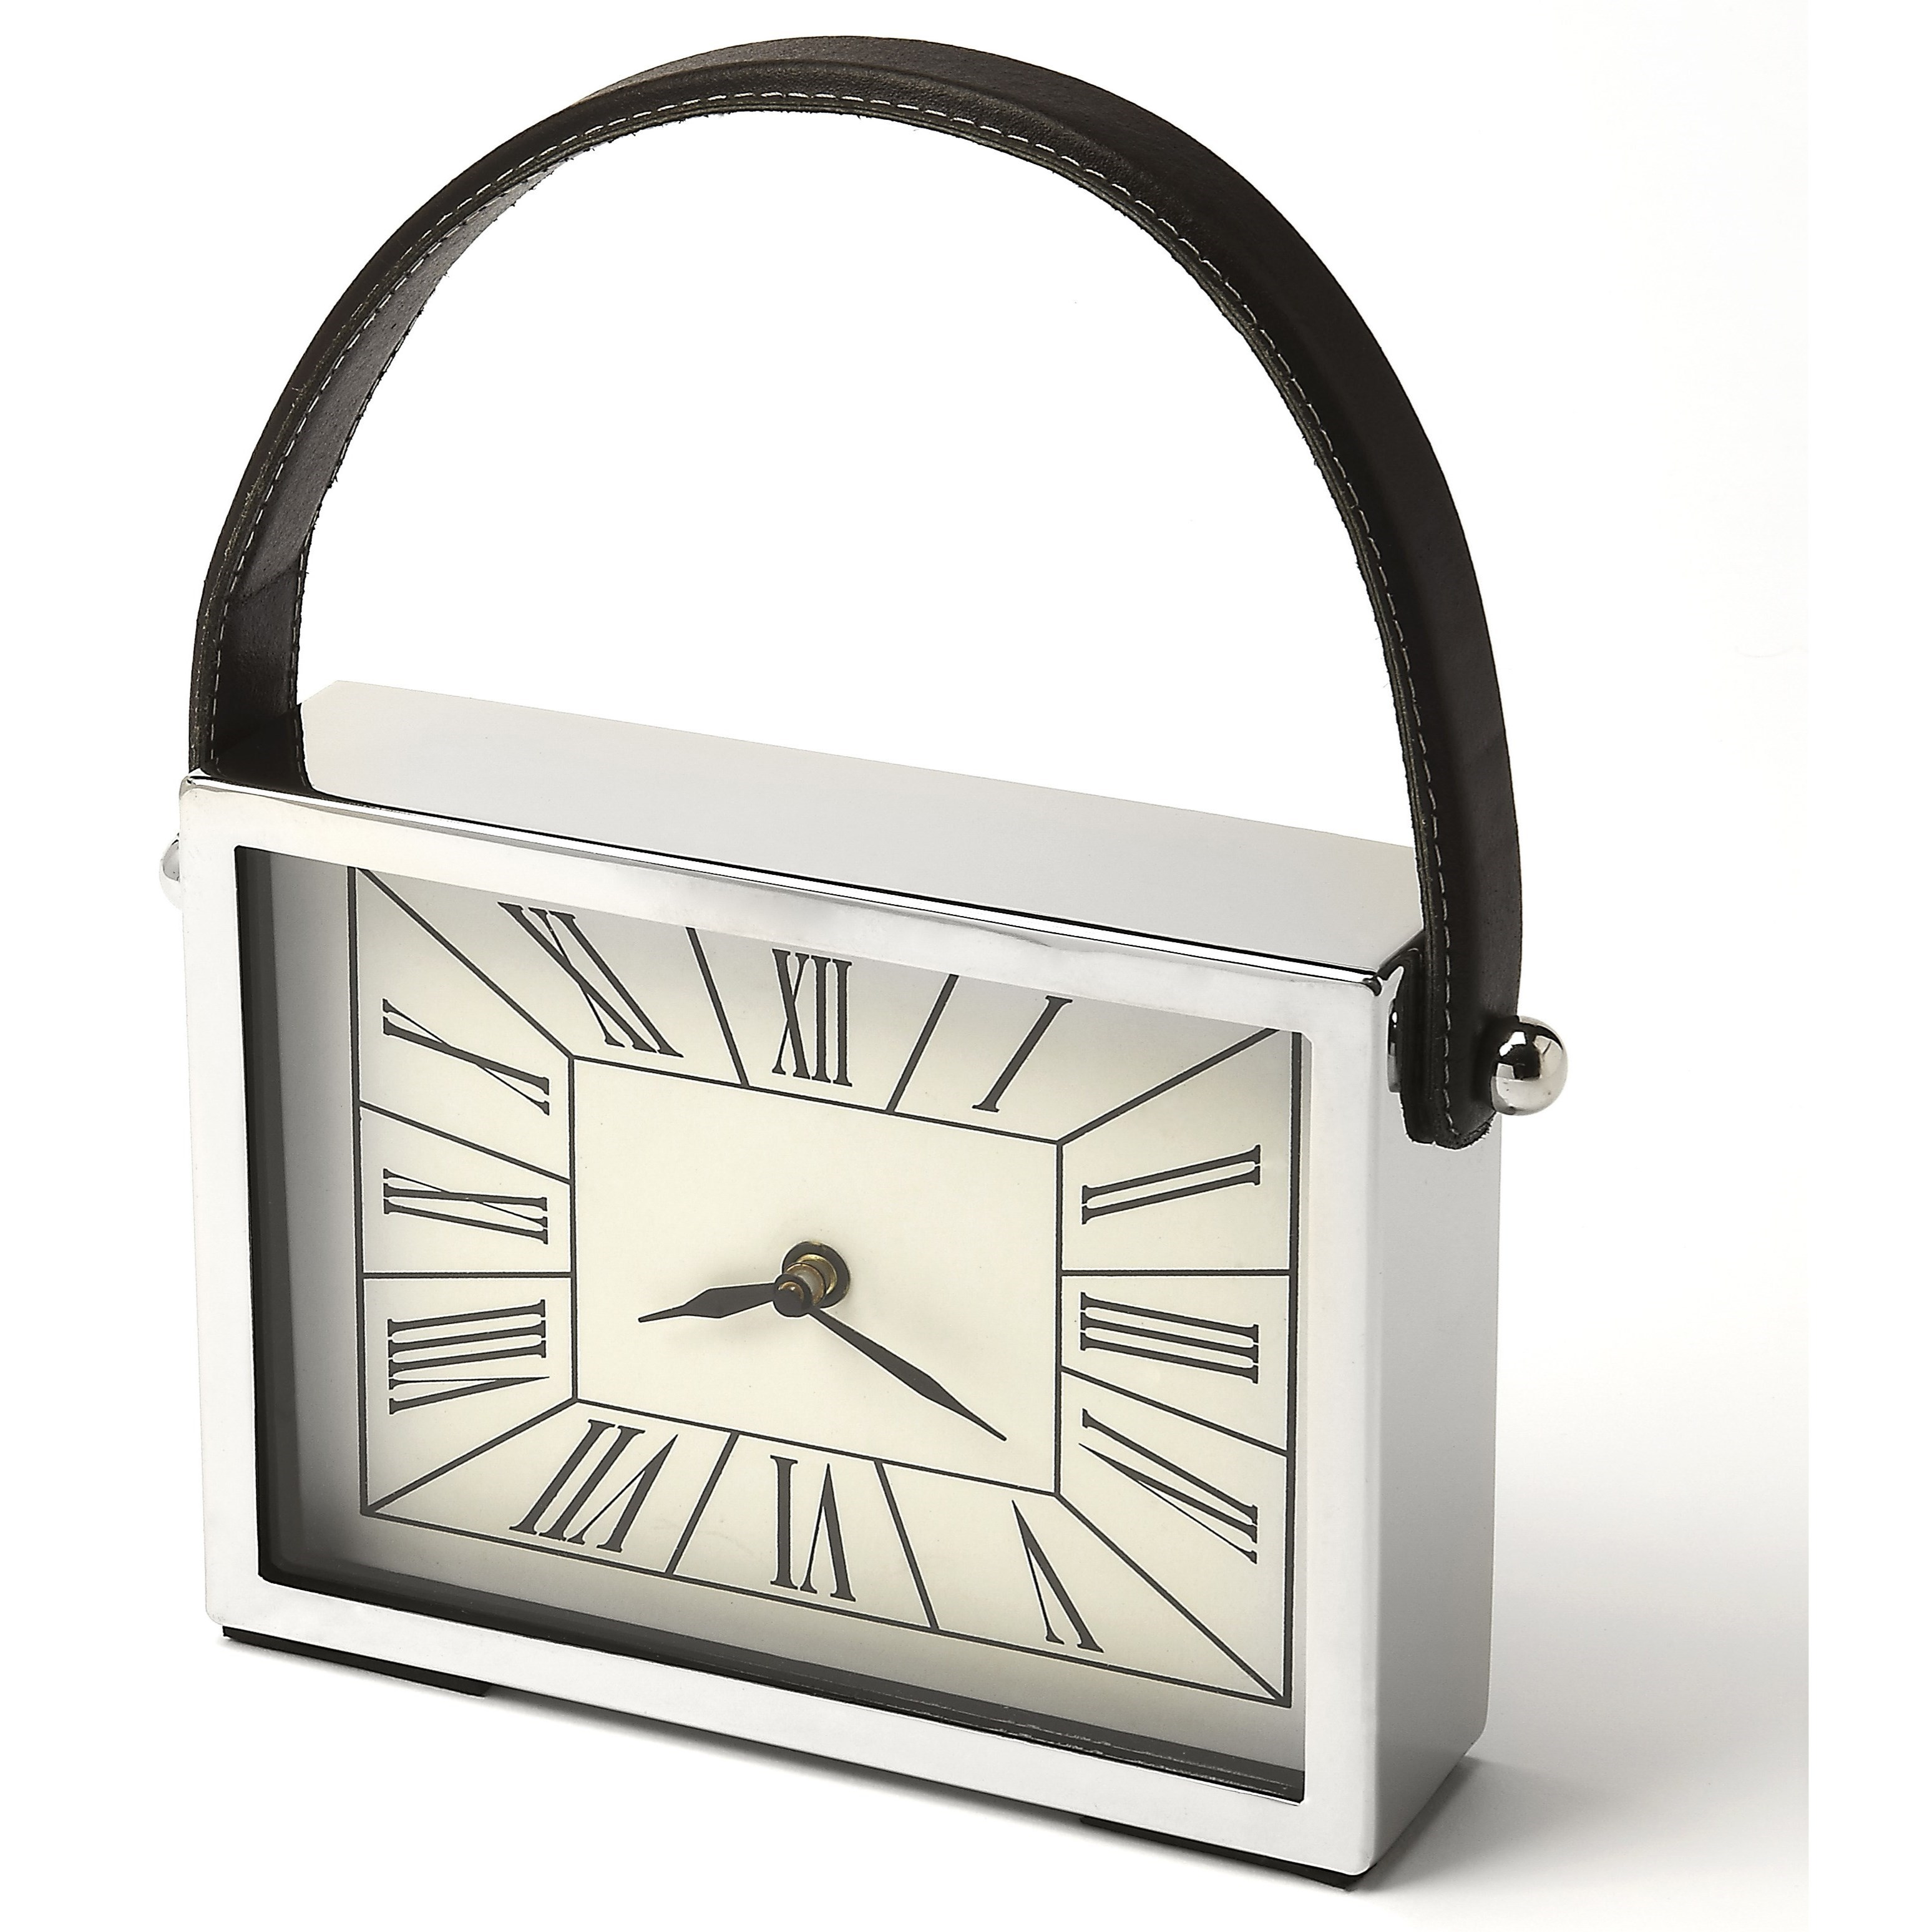 Butler Specialty Company Hors D'oeuvres Desk Clock - Item Number: 6220365